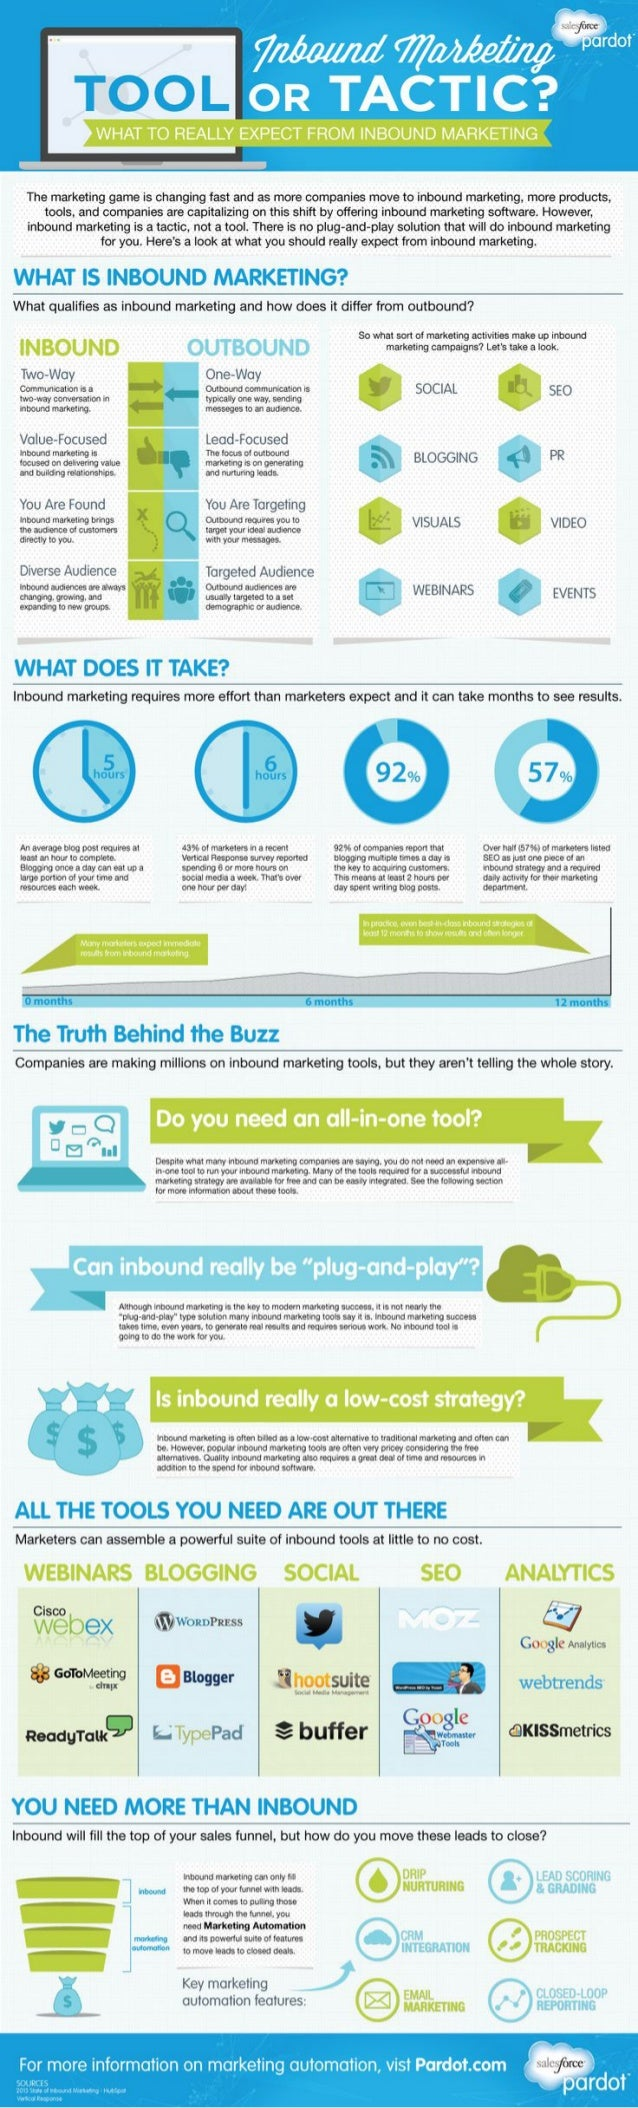 Inbound Marketing: Tool or Tactic? [Infographic]